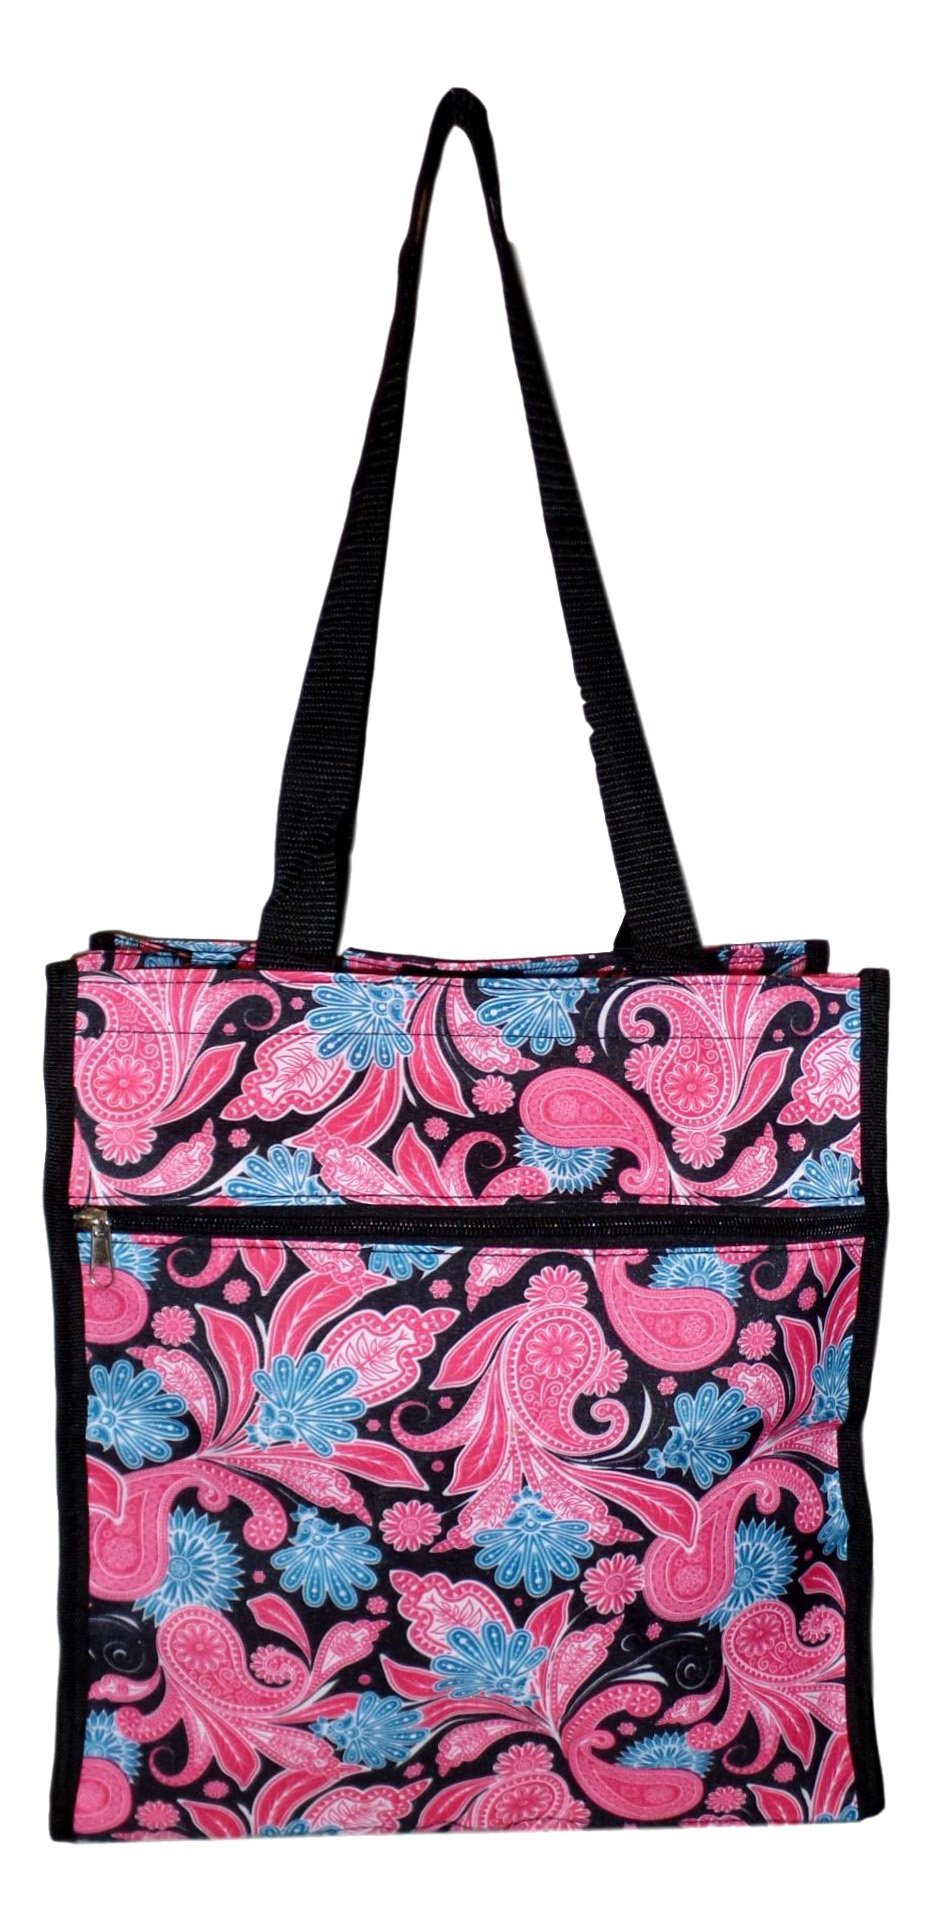 Medium Fashion Print Travel Tote Bag with Coin Purse - Custom Available (Black Paisley)